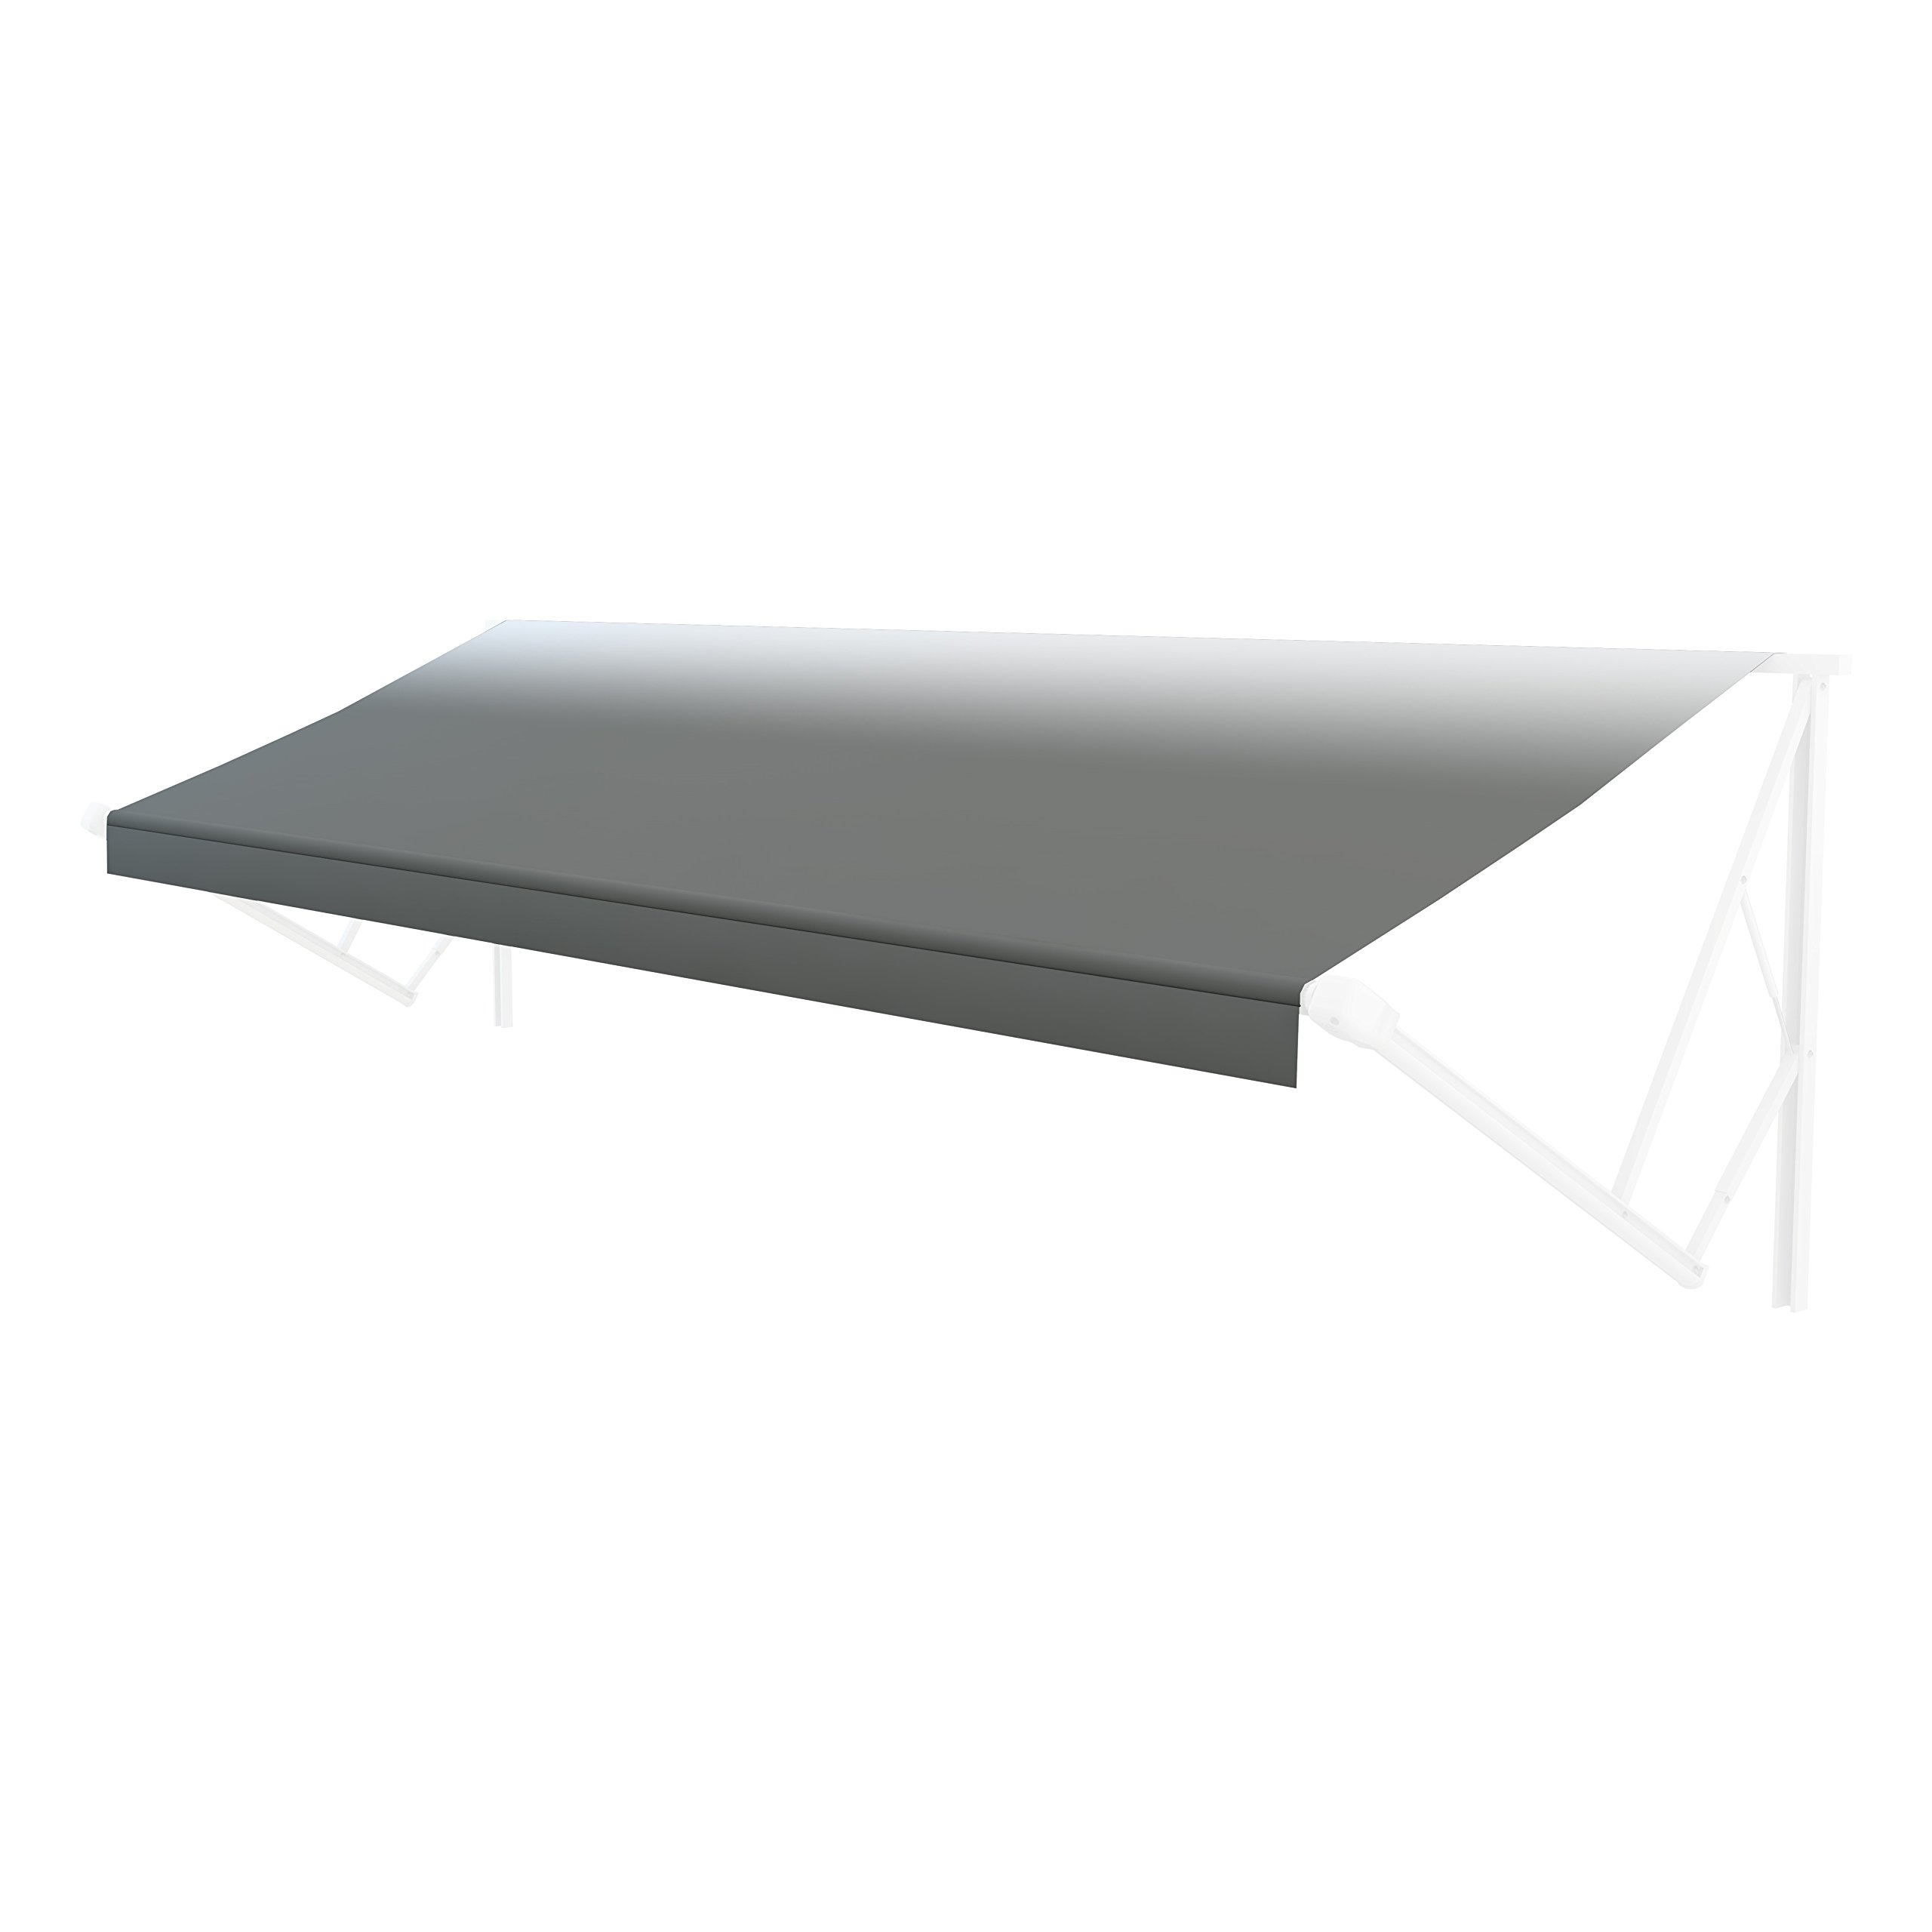 Solera Universal Fit Heavy Duty Vinyl Rv Patio Awning Replacement